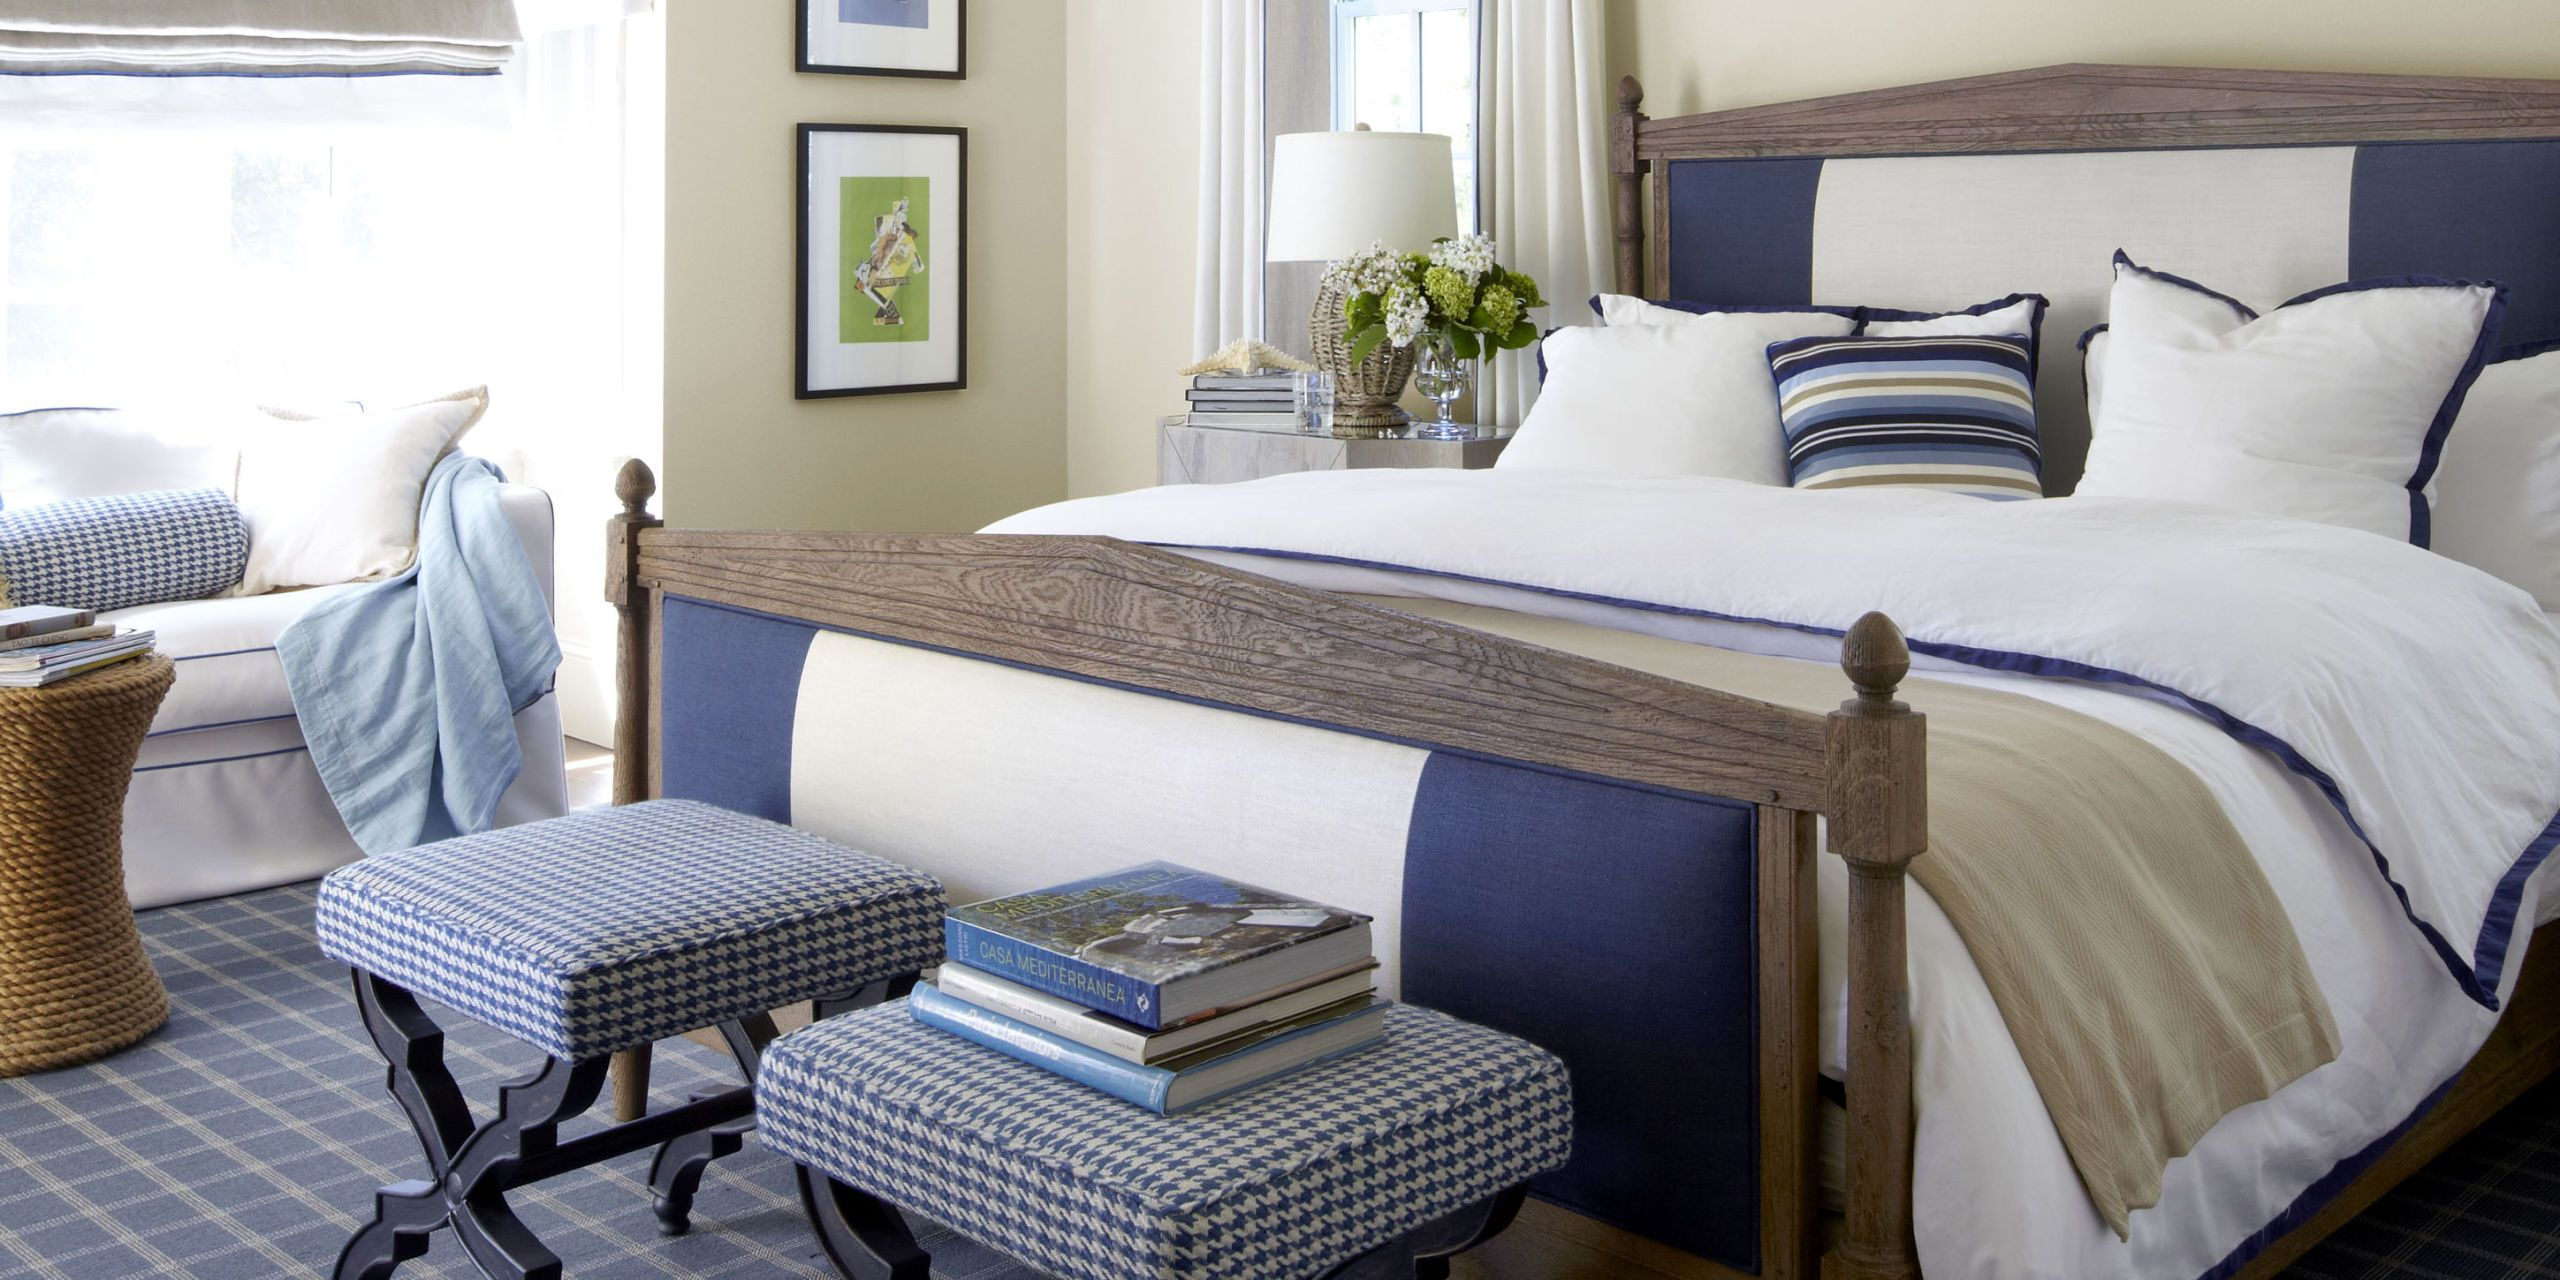 7 Things In Your Bedroom That'll Make You Happier